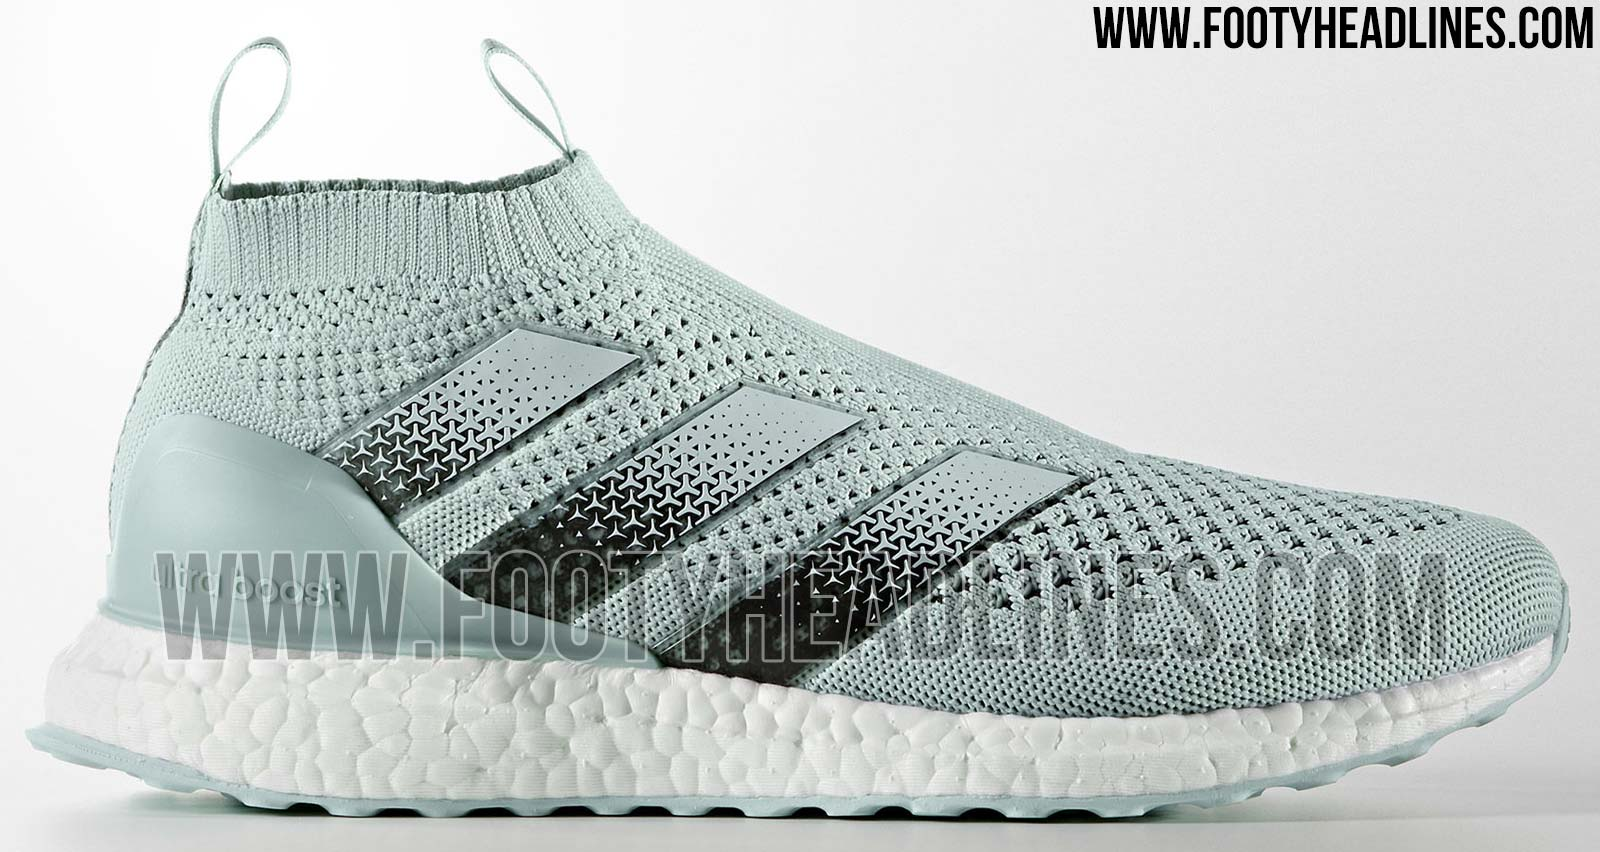 Adidas Ultra Boost Vapour Green